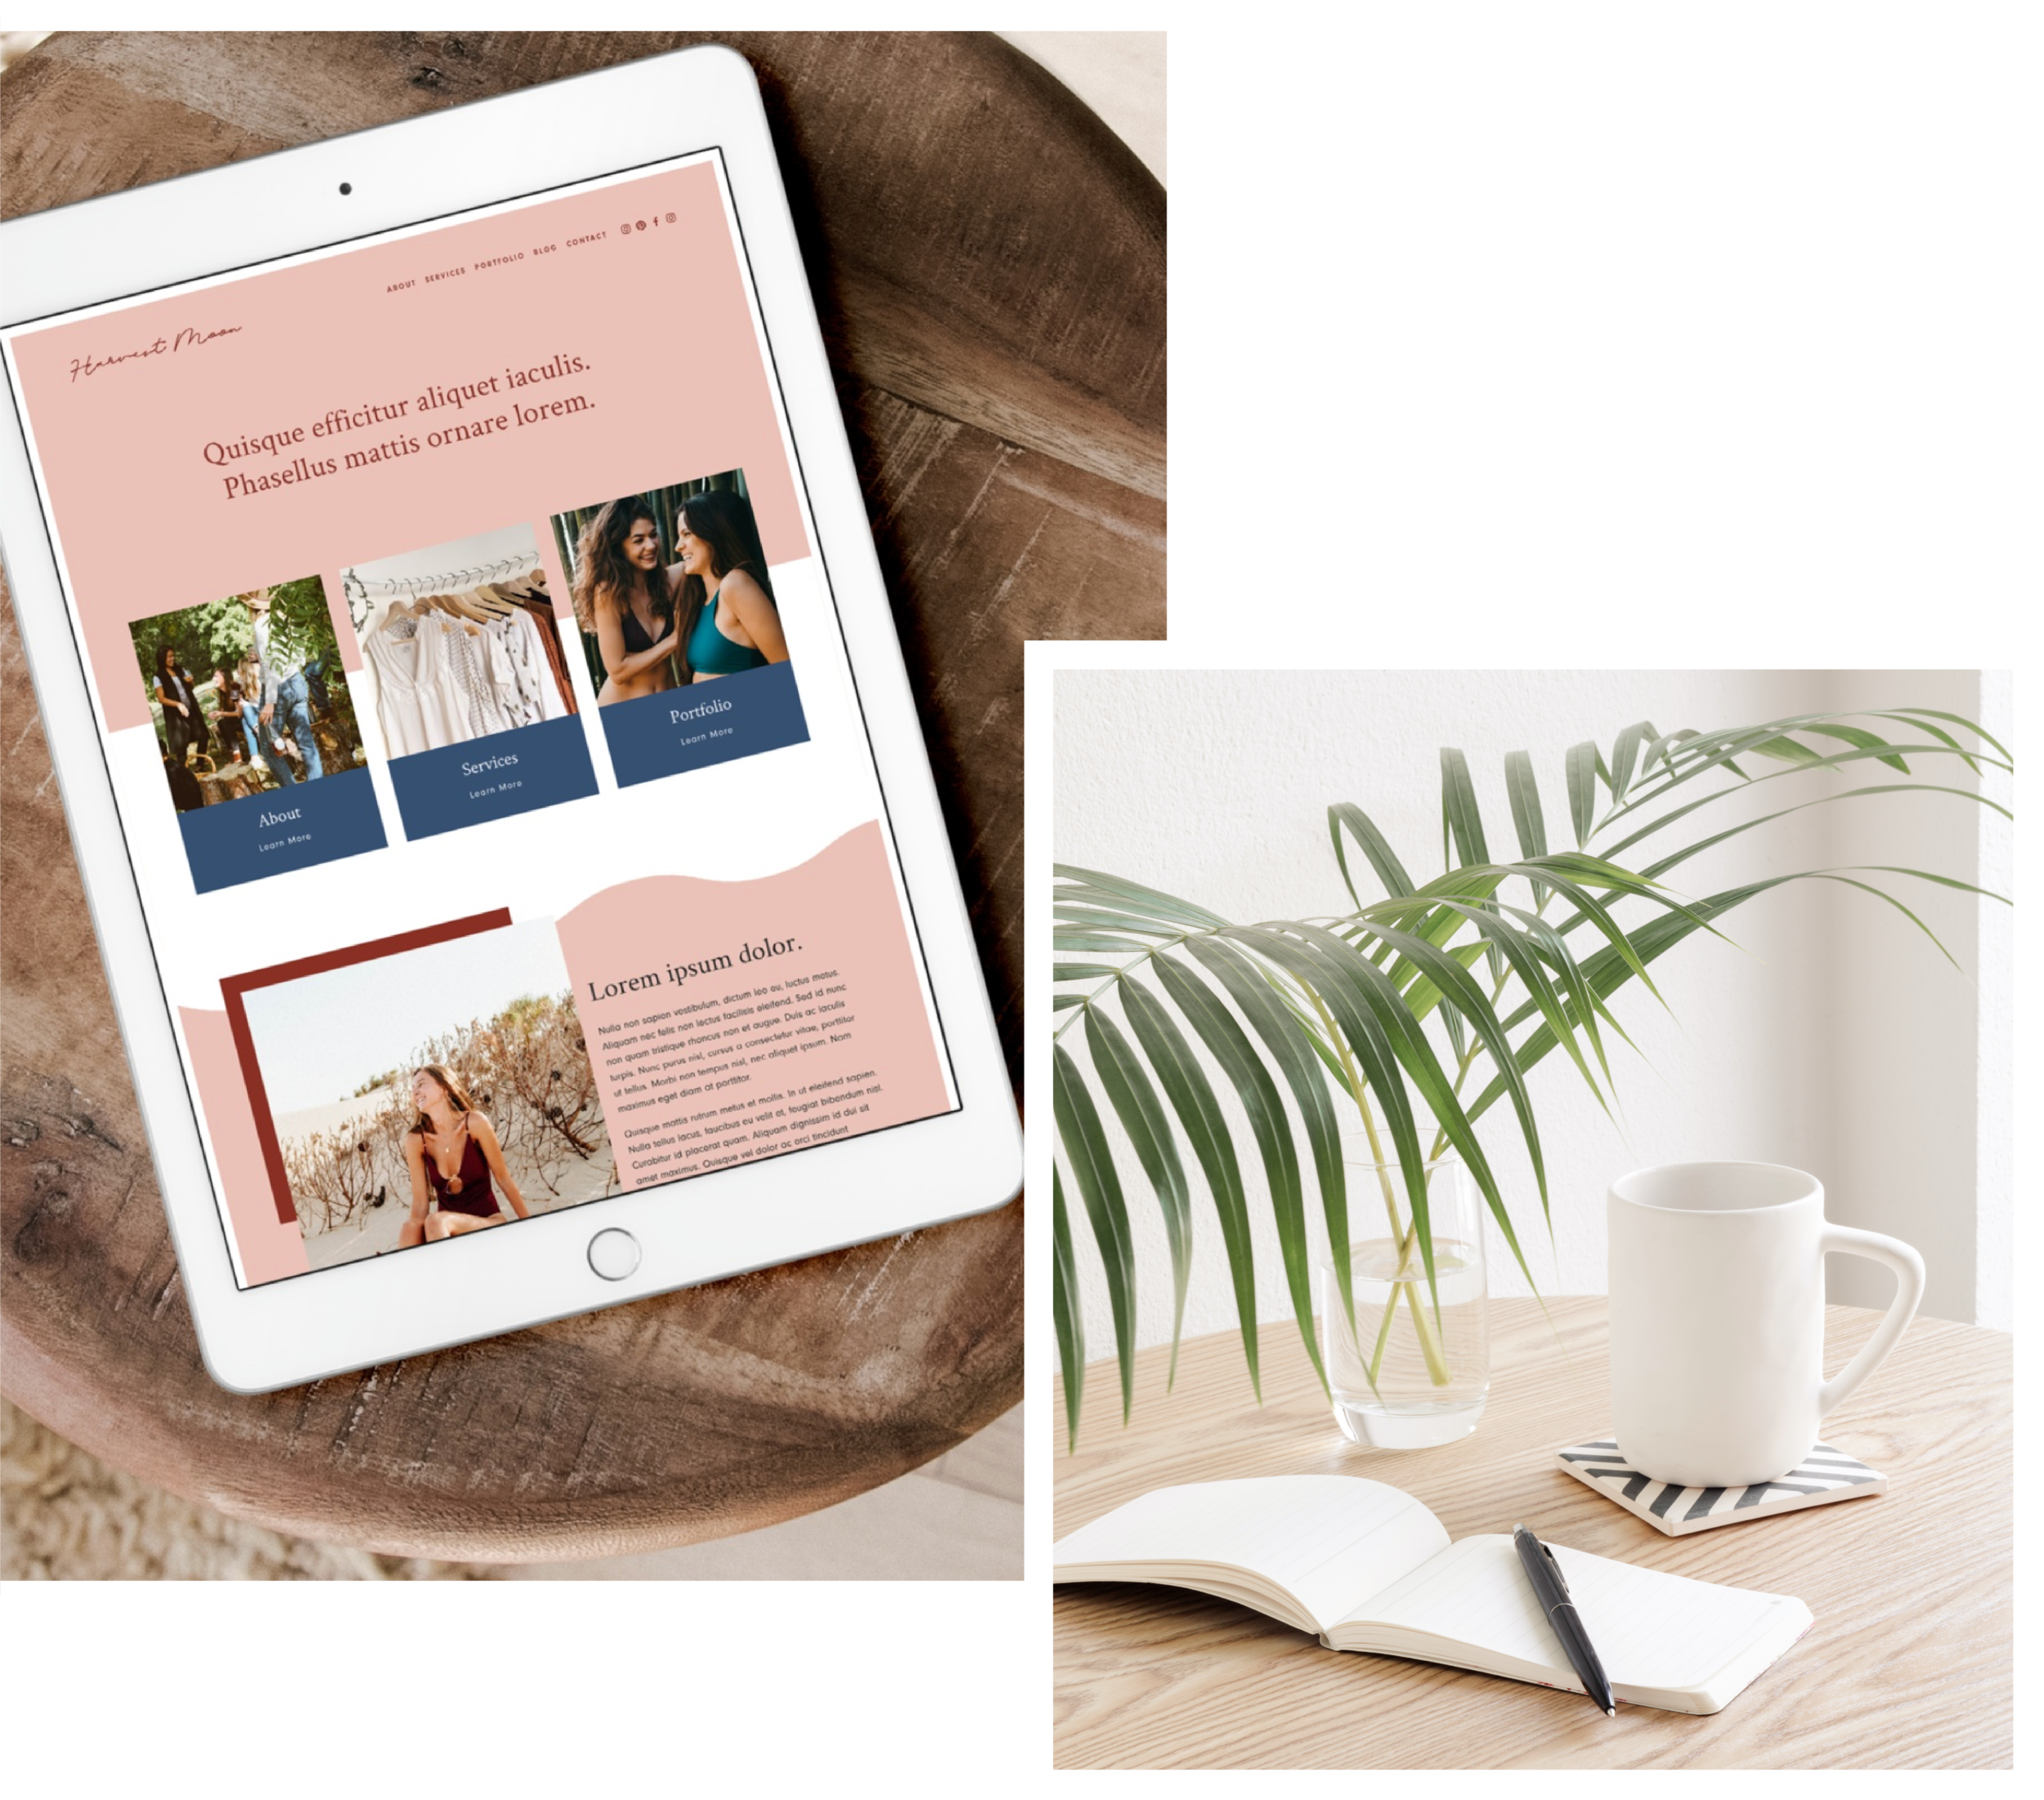 SQUARESPACE TEMPLATES - We do design, you do business - we're the perfect match. Let's craft not only a website, but an online home to grow your passion and connect with your dream clients.